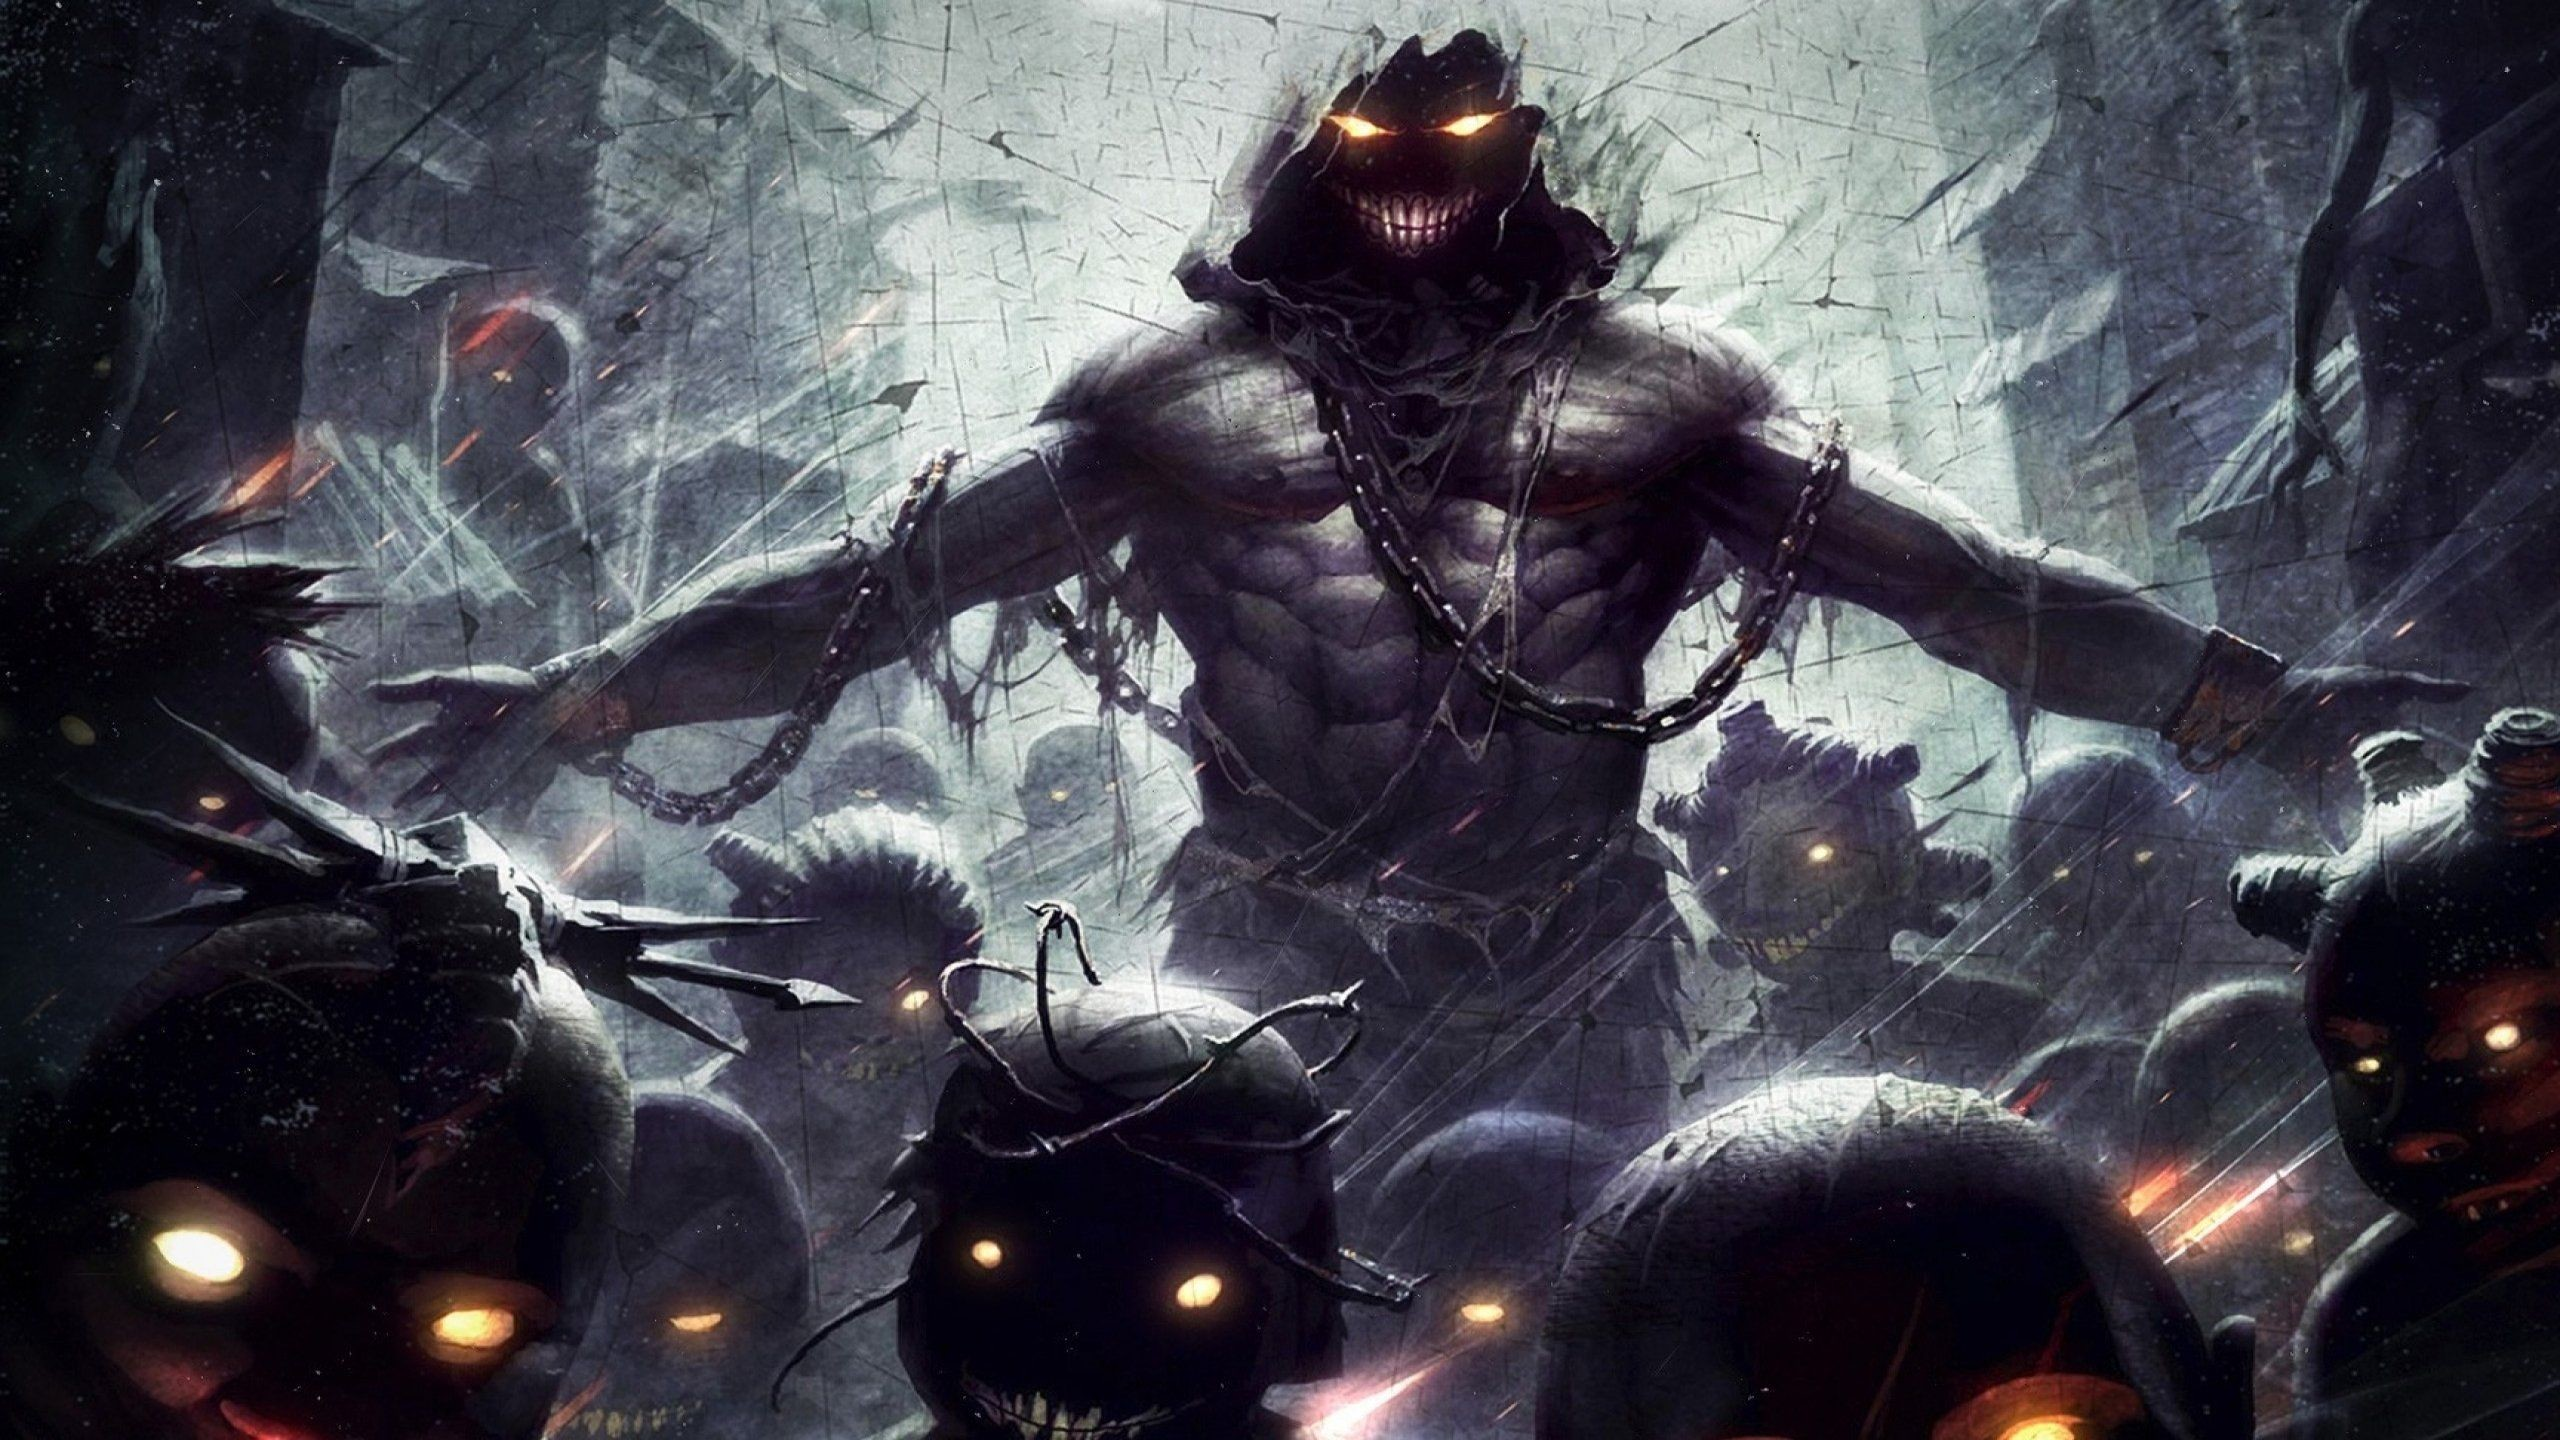 Res: 2560x1440, 6776-artwork-demons-disturbed-monsters-dark-darkness-light-